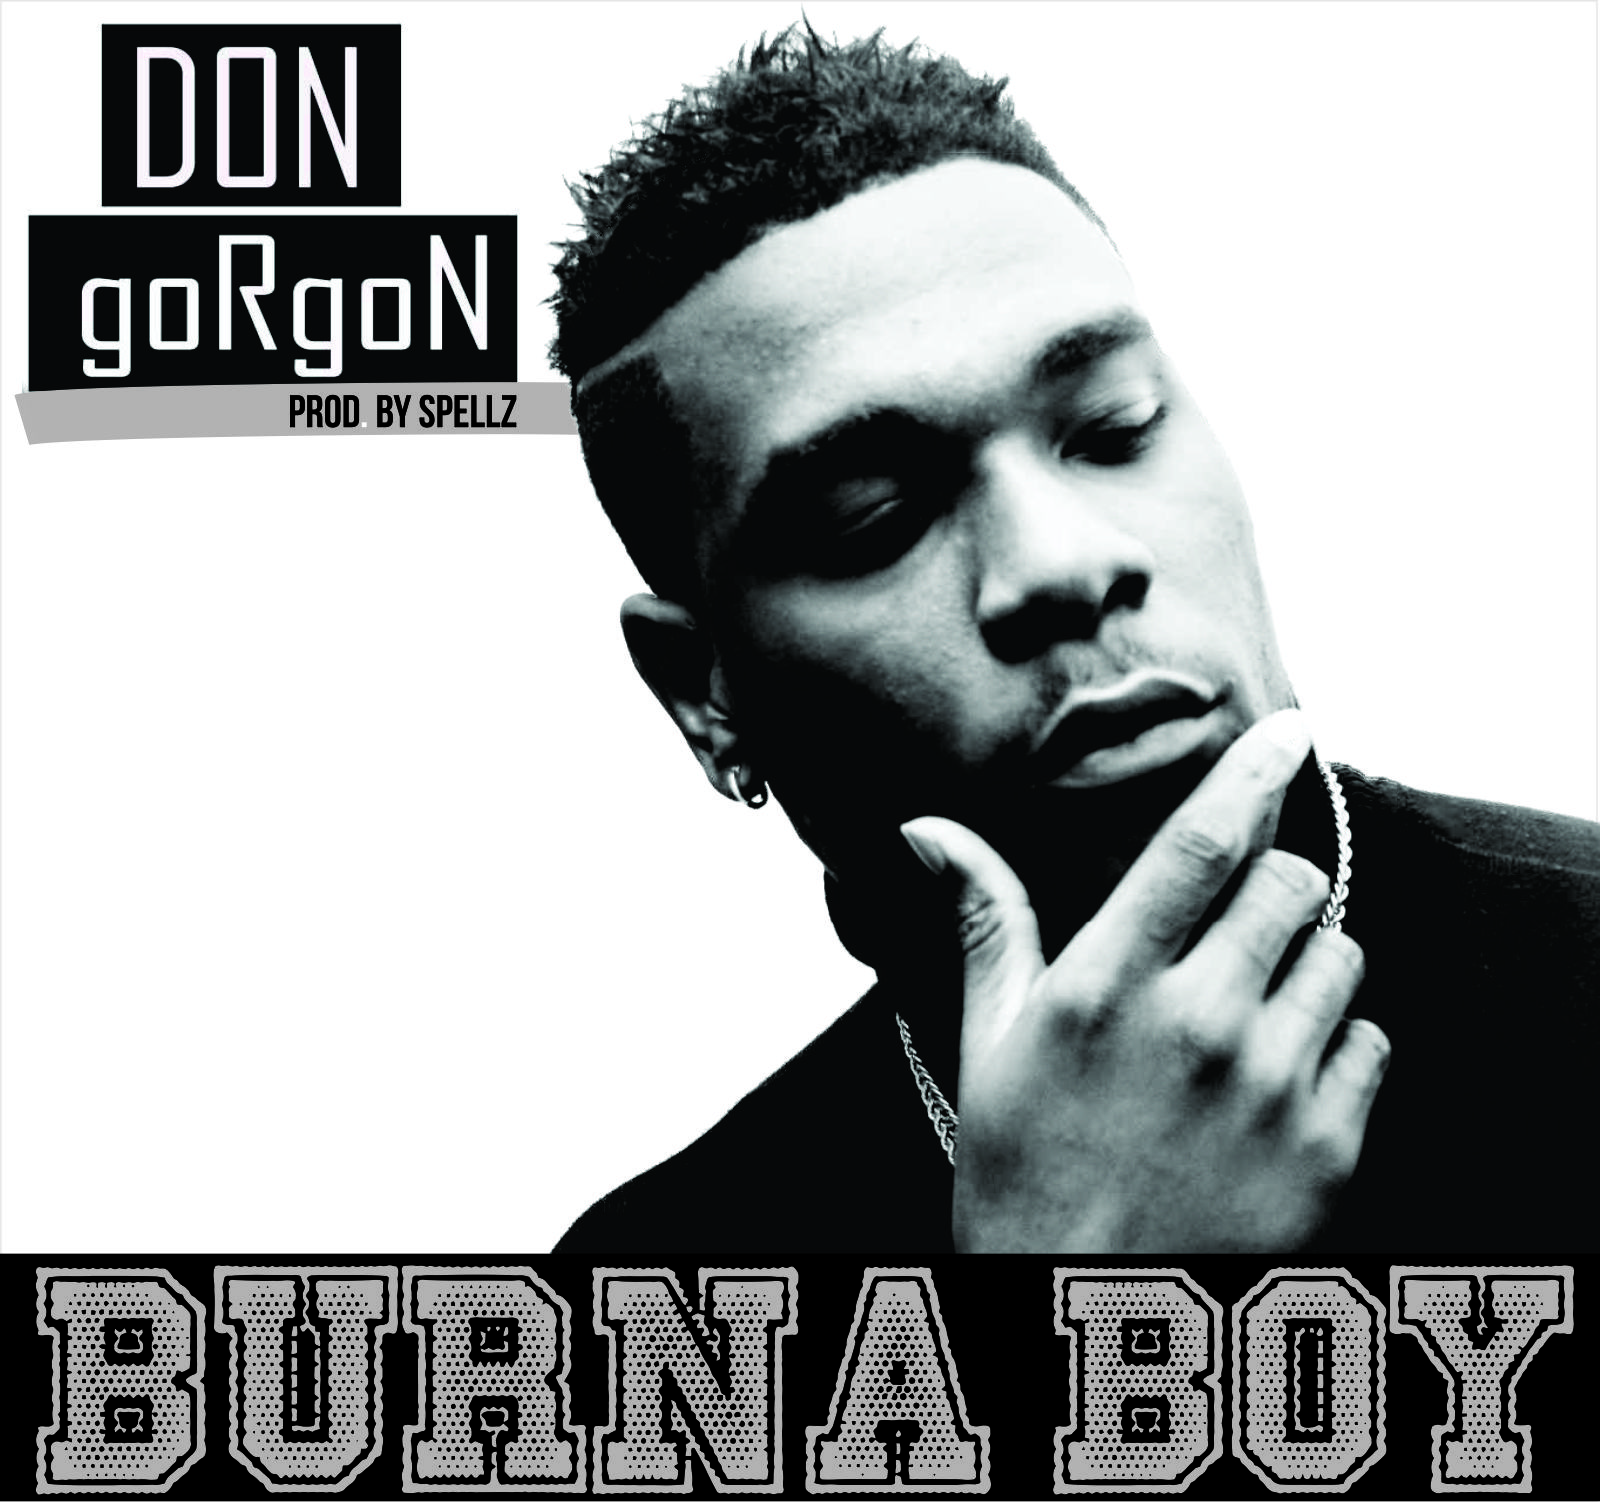 Burna Boy - Don Gorgon [AuDio]